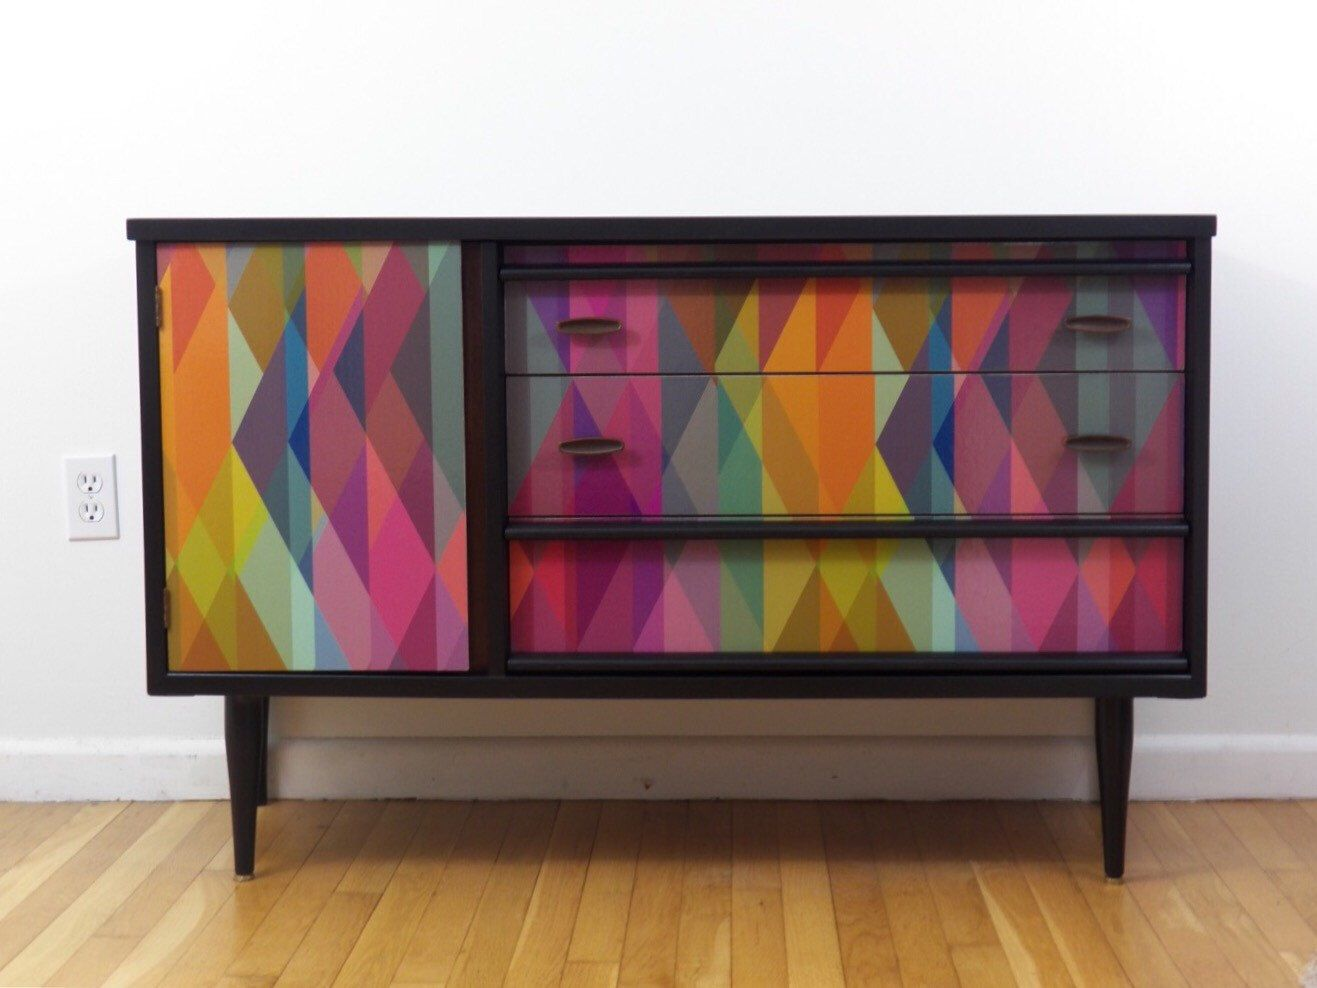 surprising modern living room credenza | Mid-century modern credenza with geometric wallpaper ...